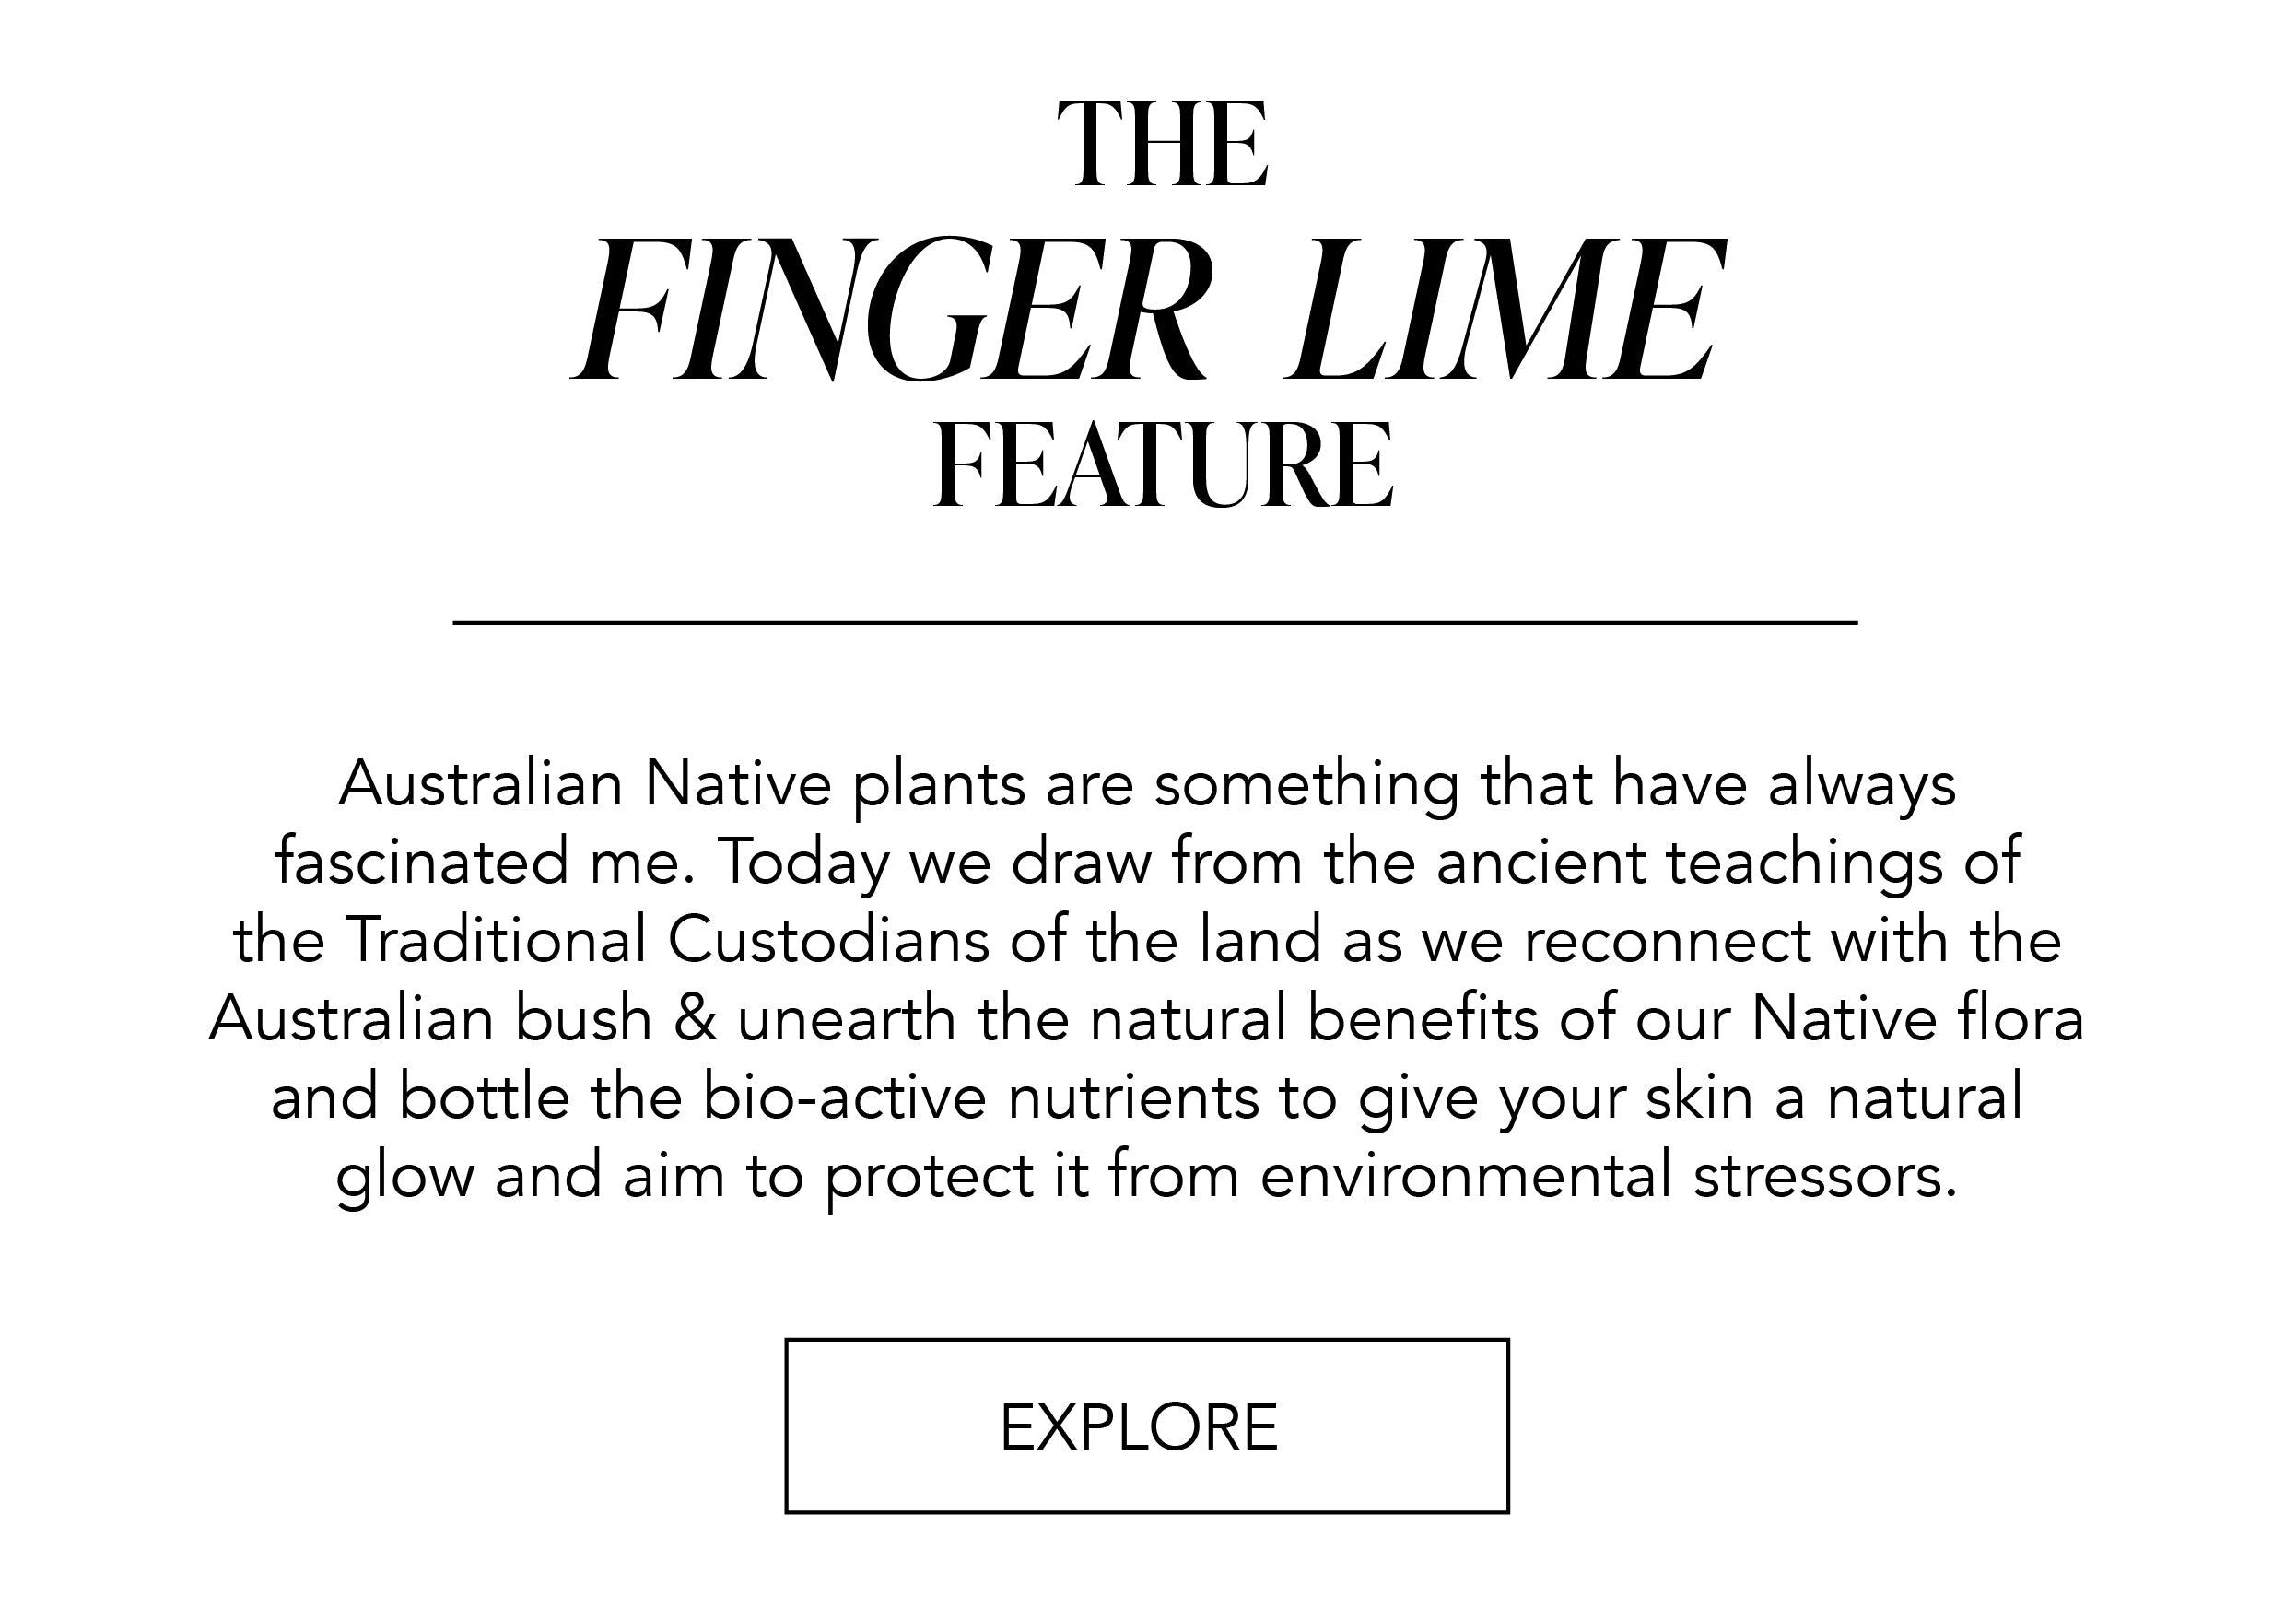 The Finger Lime Feature: Australian Native plants are something that have always fascinated me. Today we draw from the ancient teachings of the Traditional Custodians of the land as we reconnect with the Australian bush & unearth the natural benefits of our Native flora and bottle the bio-active nutrients to give your skin a natural glow and aim to protect it from environmental stressors.